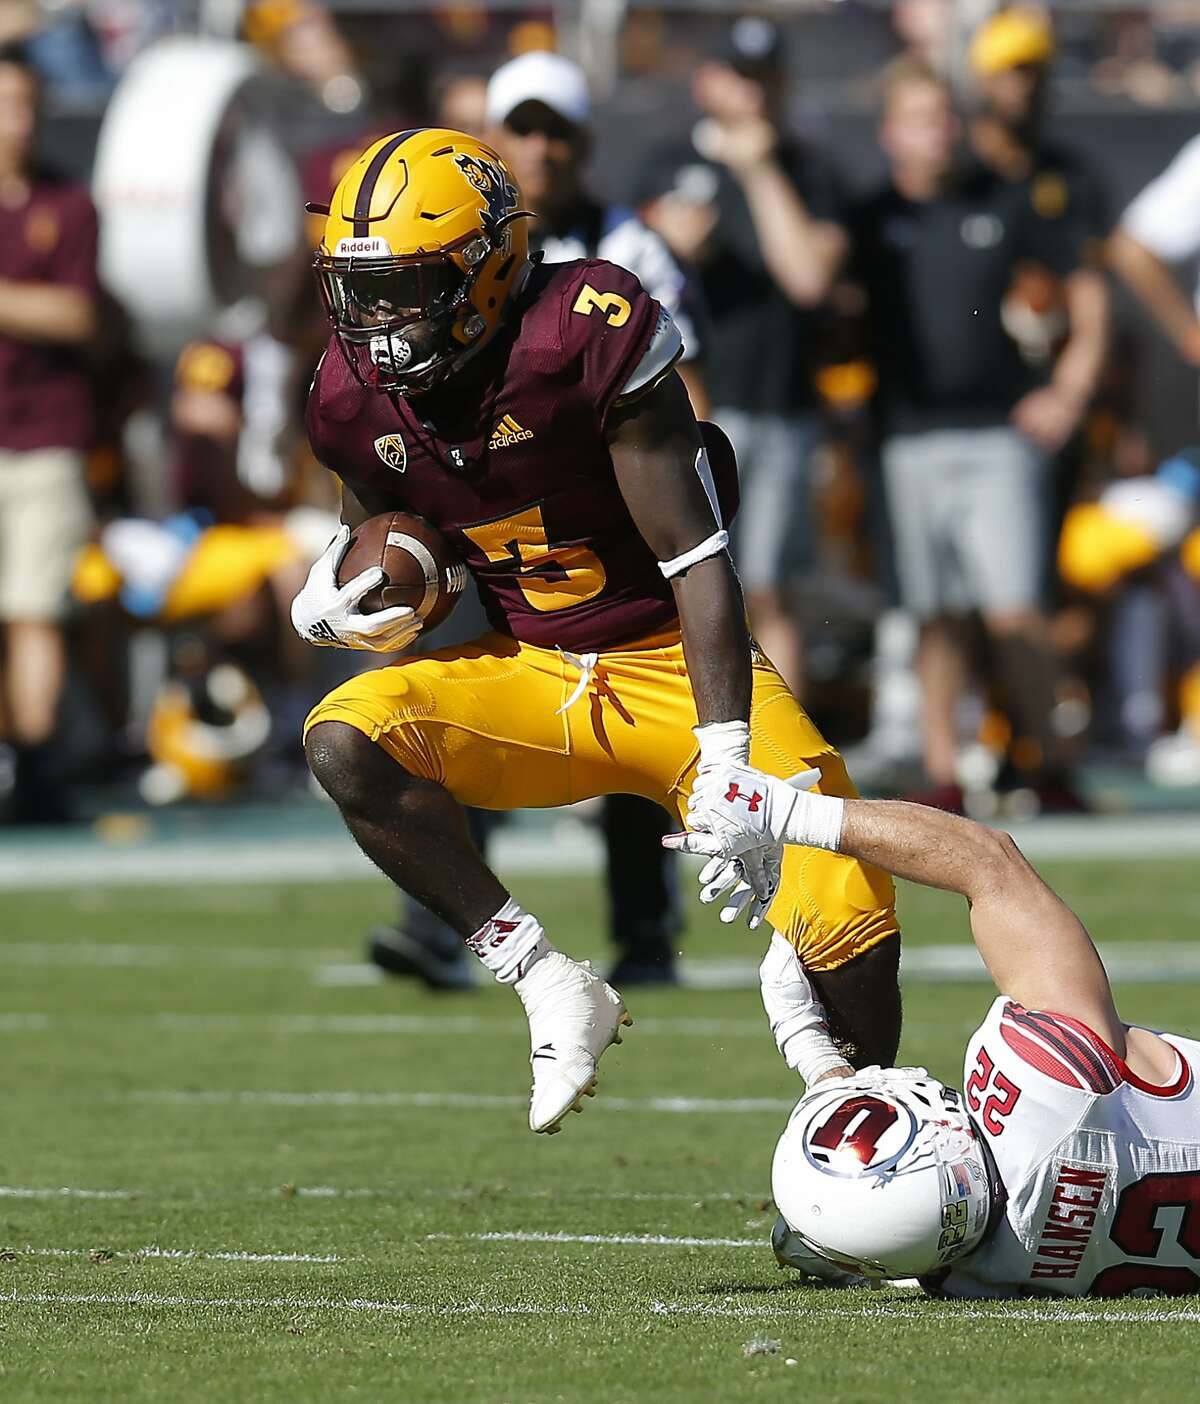 RB: Eno Benjamin, Arizona State Benjamin is one of the most effective backs in the country, plain and simple. Last season, he rushed for 1,642 yards and 16 touchdowns - the third and eighth best marks in the NCAA, respectively. He's the centerpiece of ASU's offense.